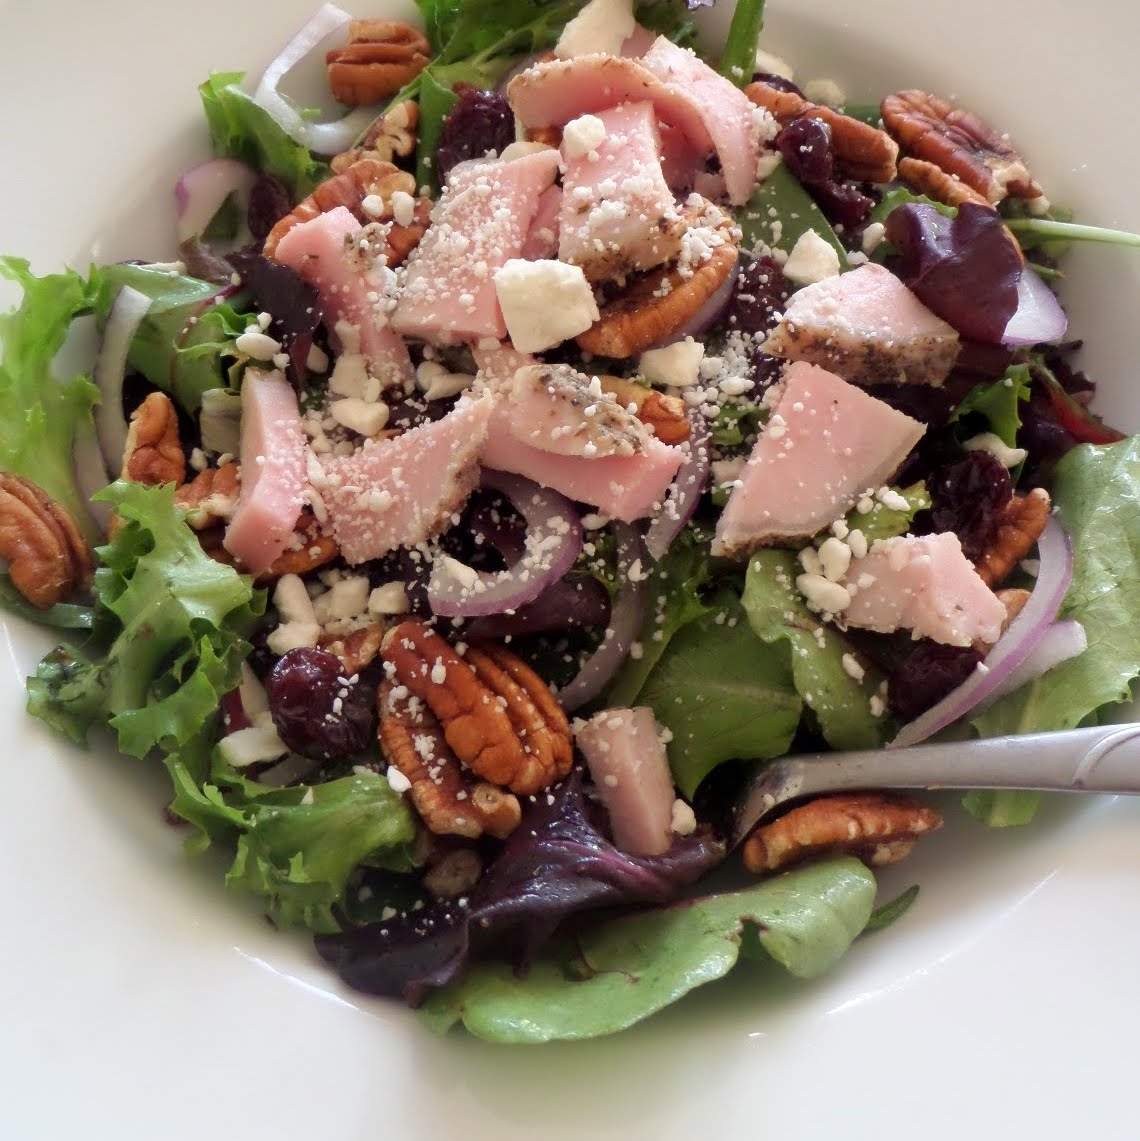 Pork Tenderloin Salad:  Tender Herb Roasted Pork Tenderloin on a green salad tossed in a lemon thyme dressing.